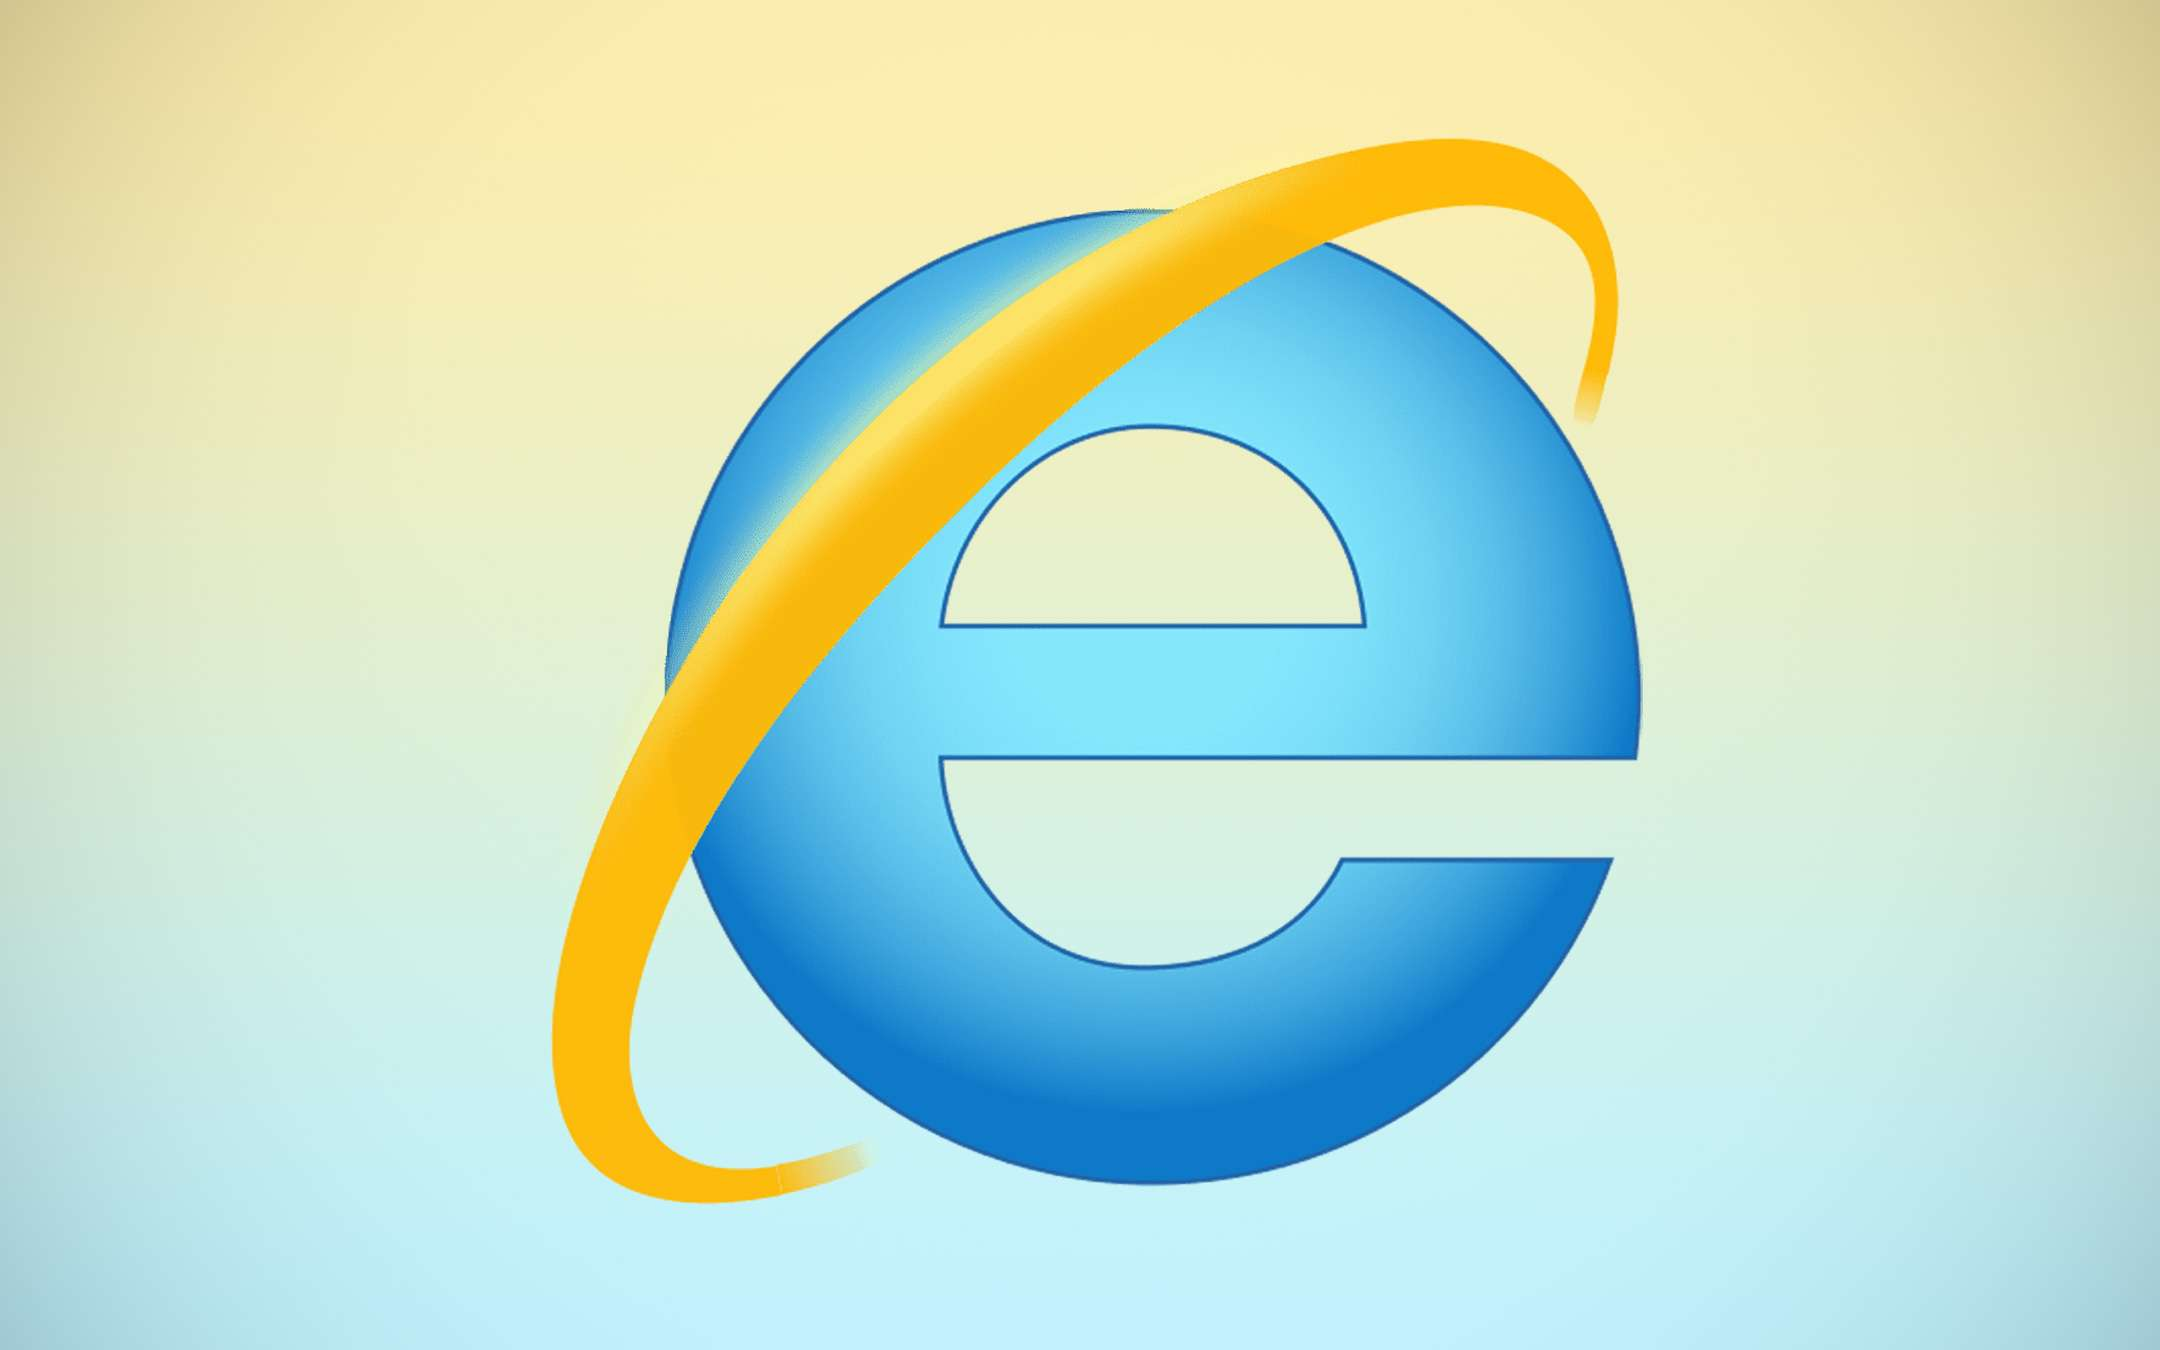 Workspace also says goodbye to Internet Explorer 11